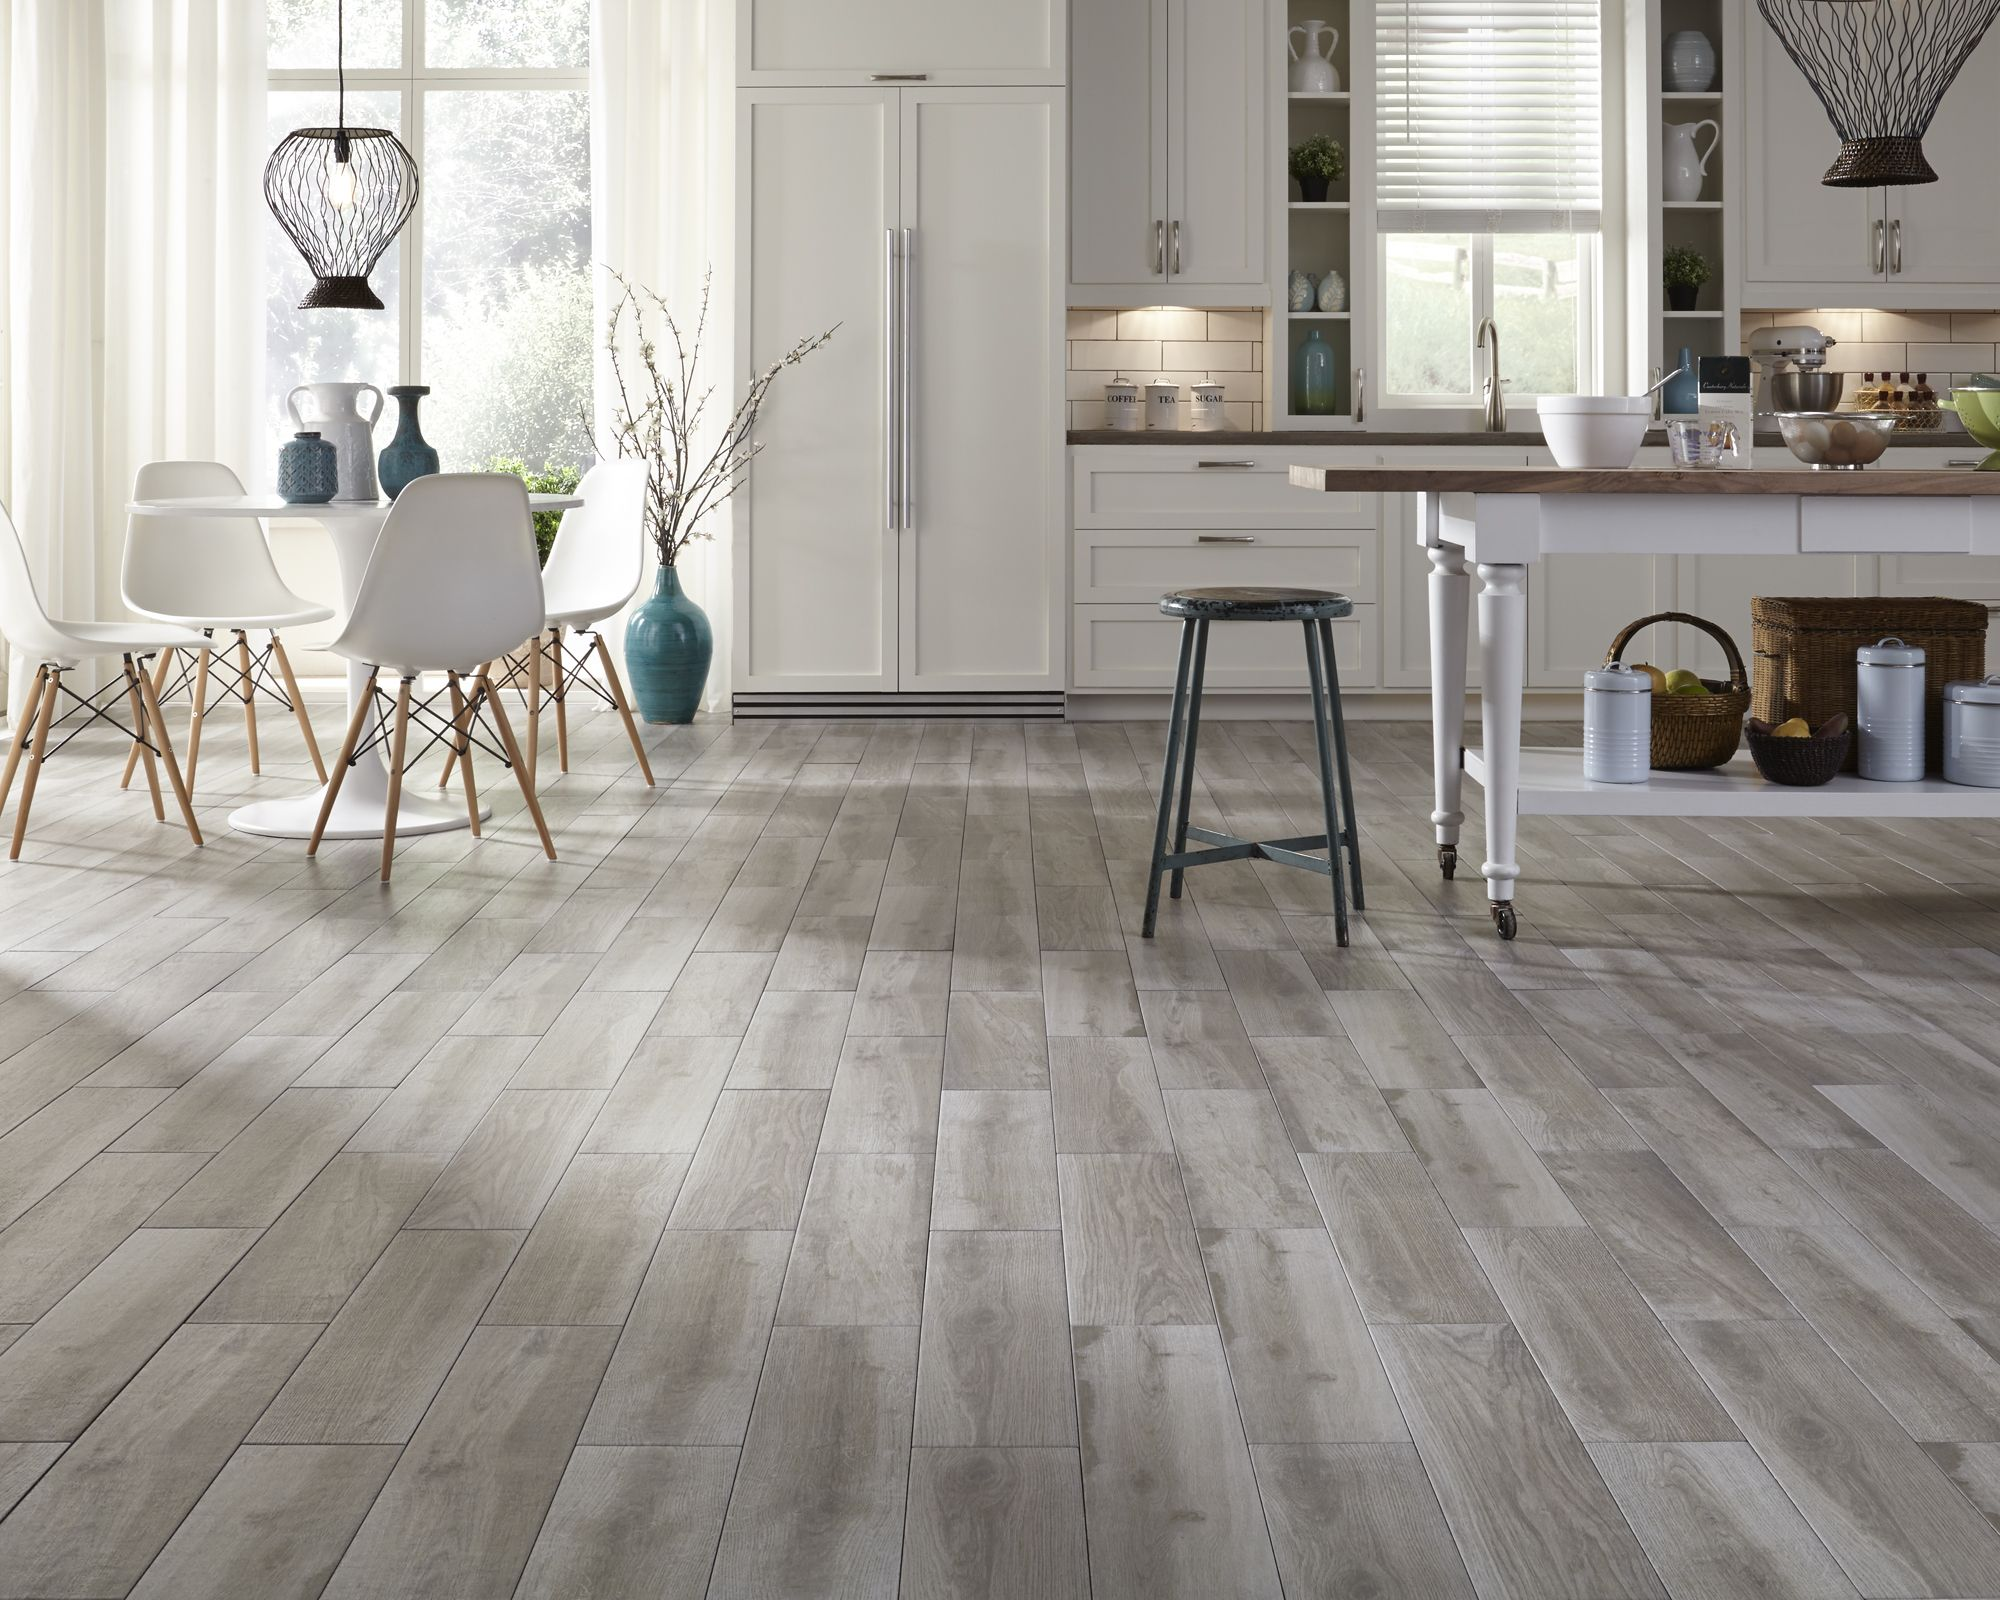 Porcelain Floor Kitchen Interested In Wood Look Tile Check Out Himba Gray Porcelain